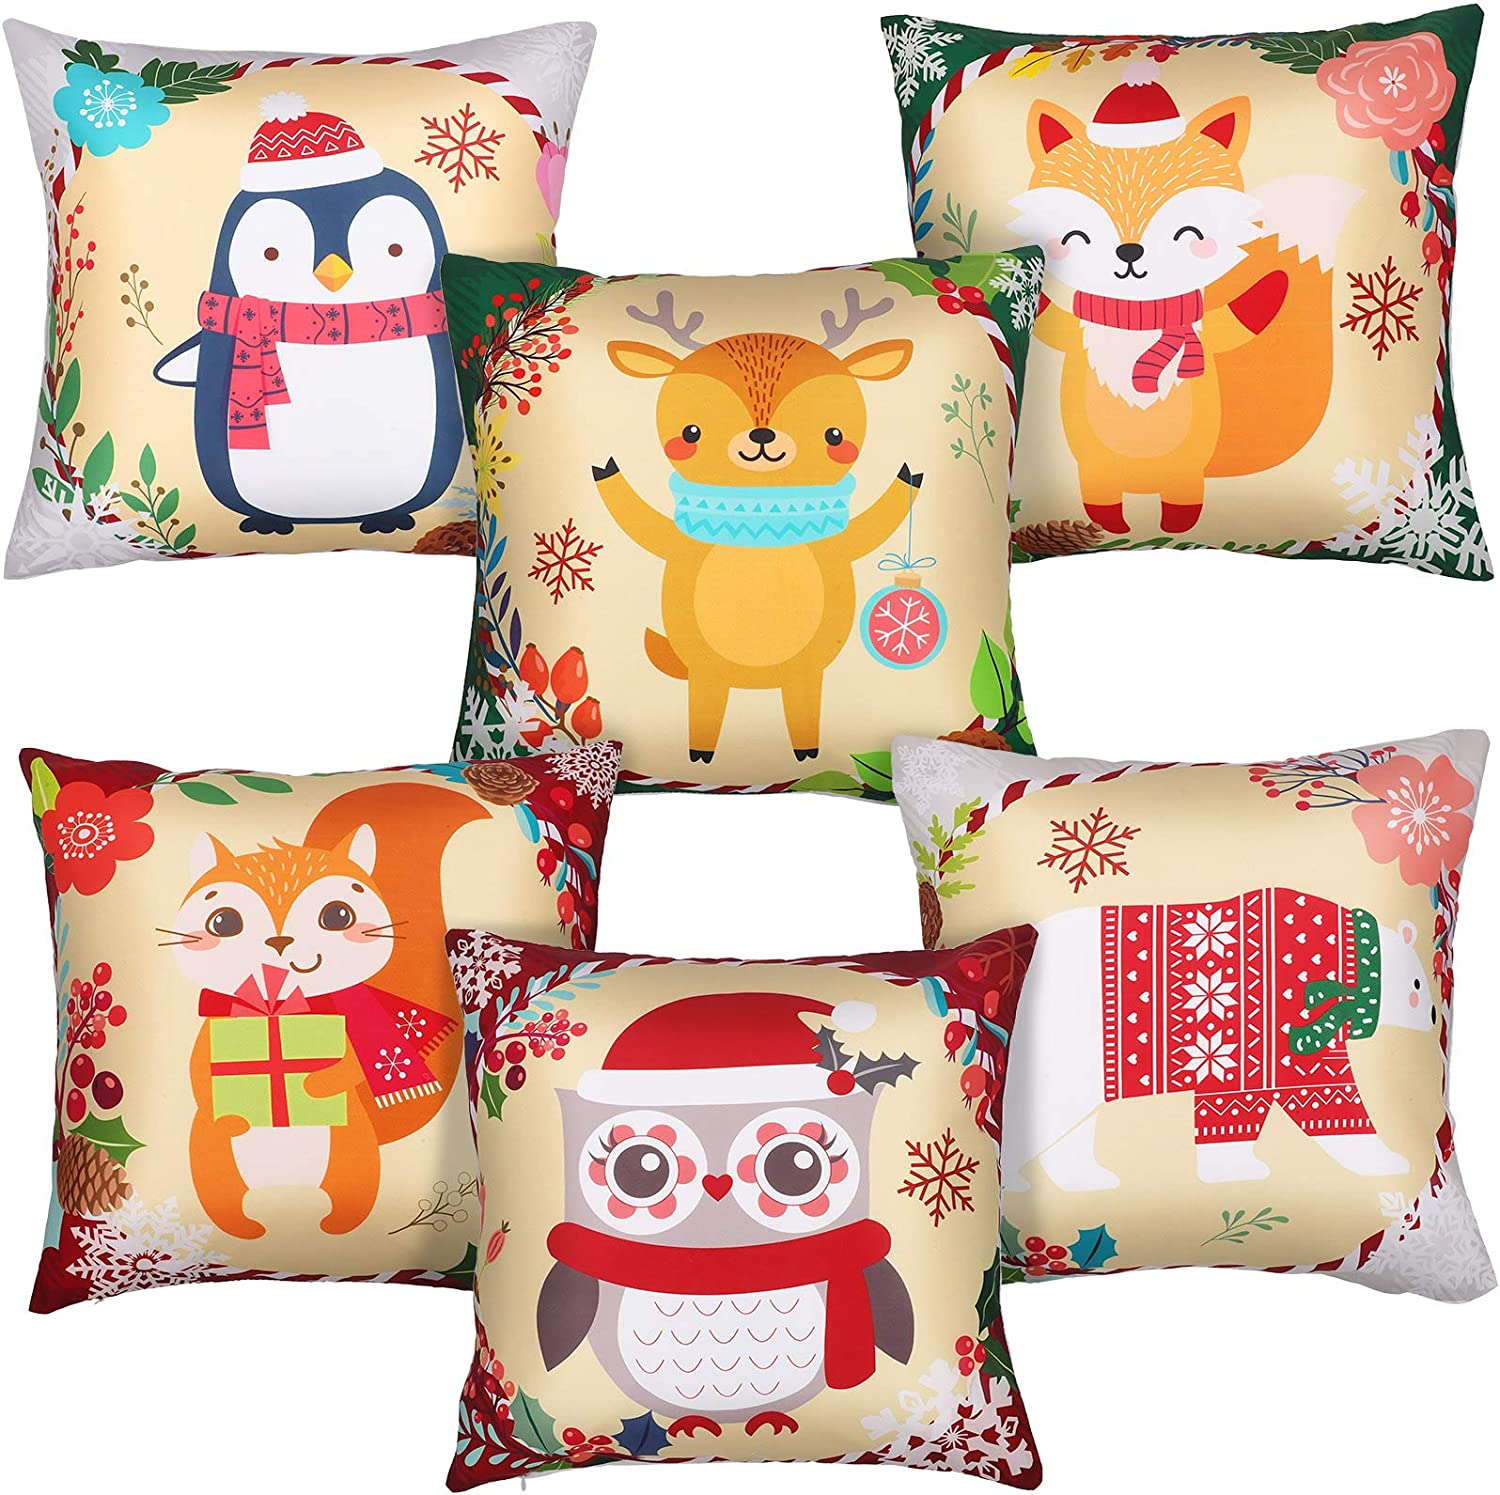 6 Pieces Christmas Animal Throw Pillow Covers Xmas Animal Cushion Cases 18 x 18 Inches Bear Design Winter Animal Theme Pillow Holiday Decor for Christmas Bedroom Sofa Decorations